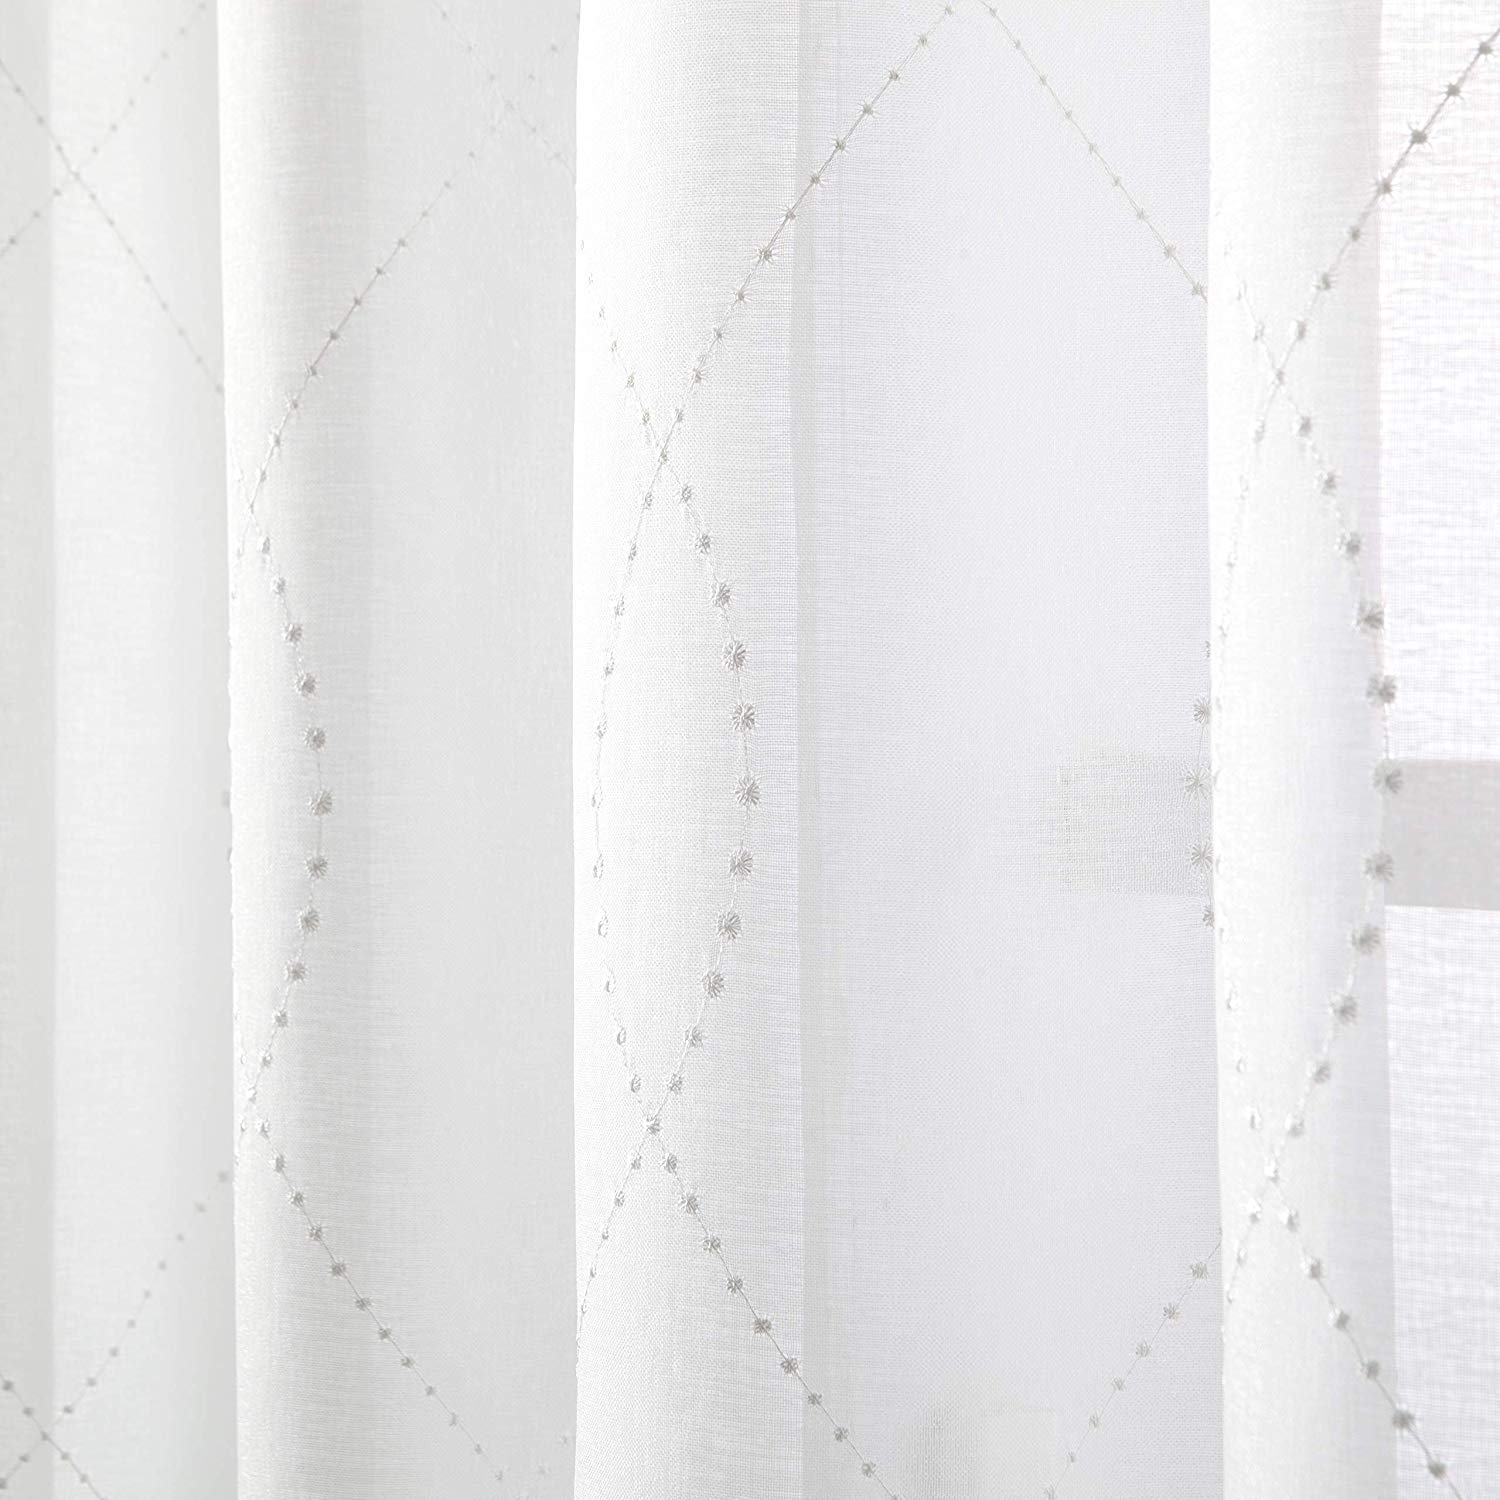 VISIONTEX Sheer White Curtains Embroidered with White Dots Pocket for livingroom Set of 2 Panles 54 x 84 inch